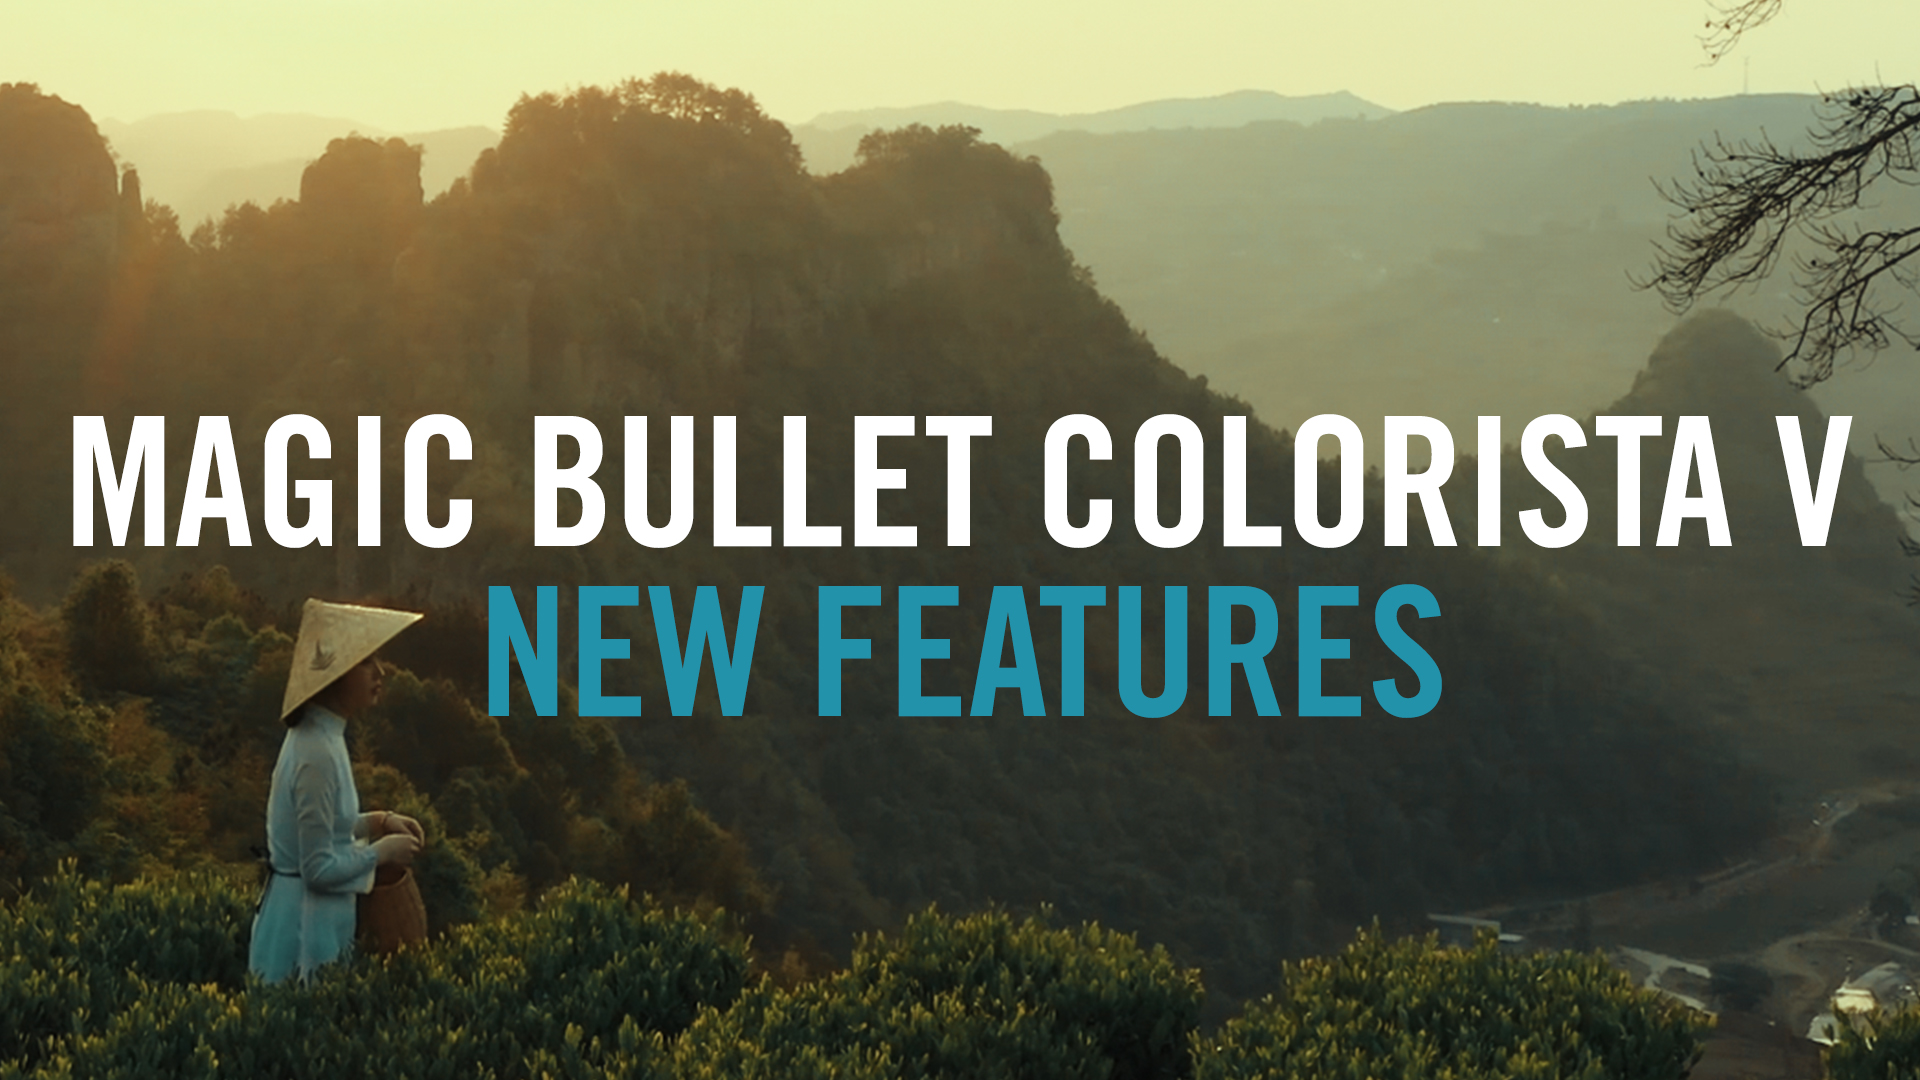 Magic Bullet Colorista V- New Features